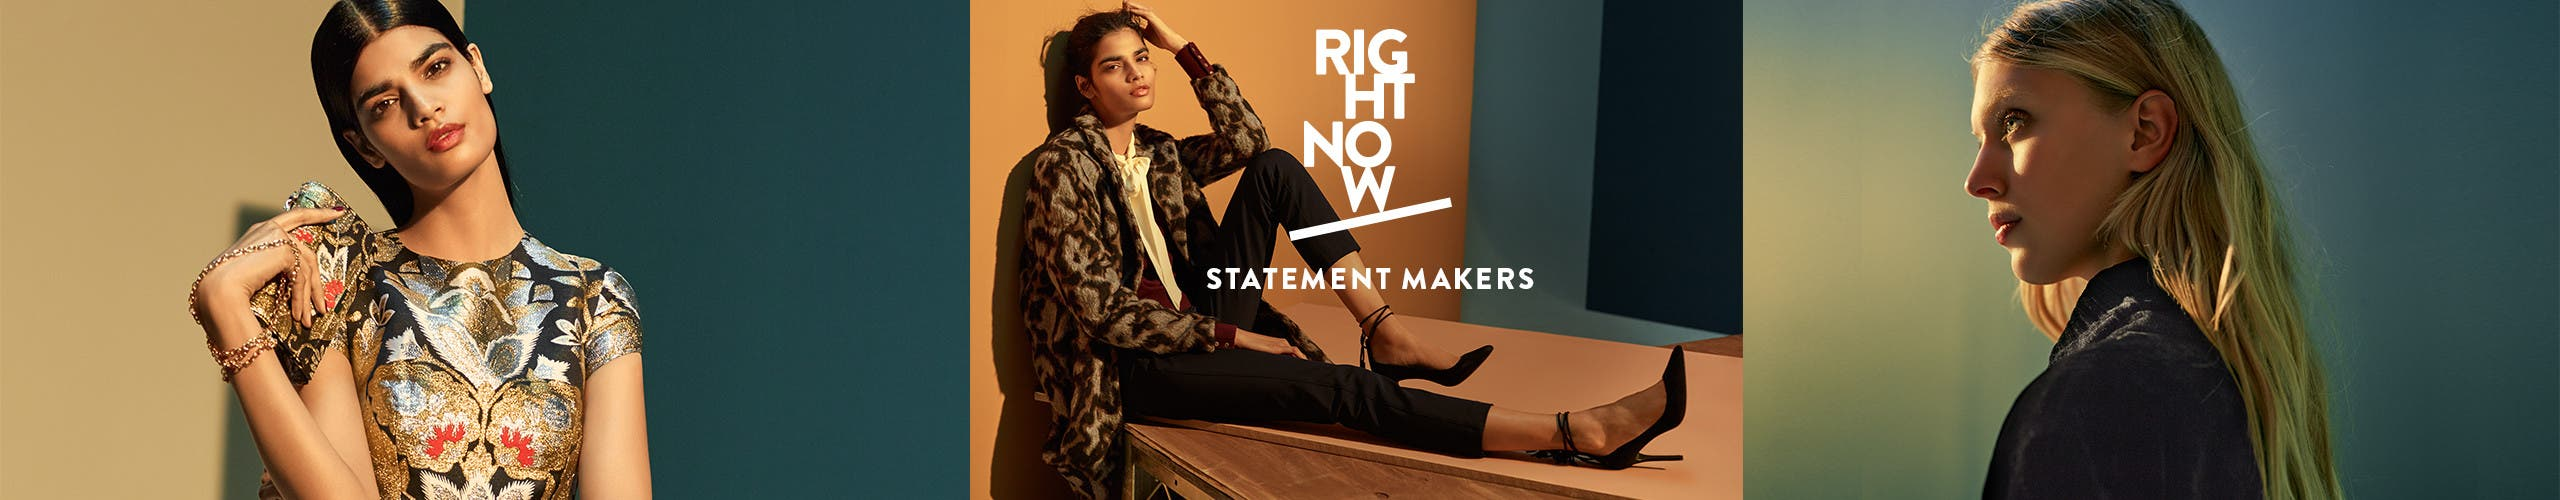 Right now: contemporary statement makers.